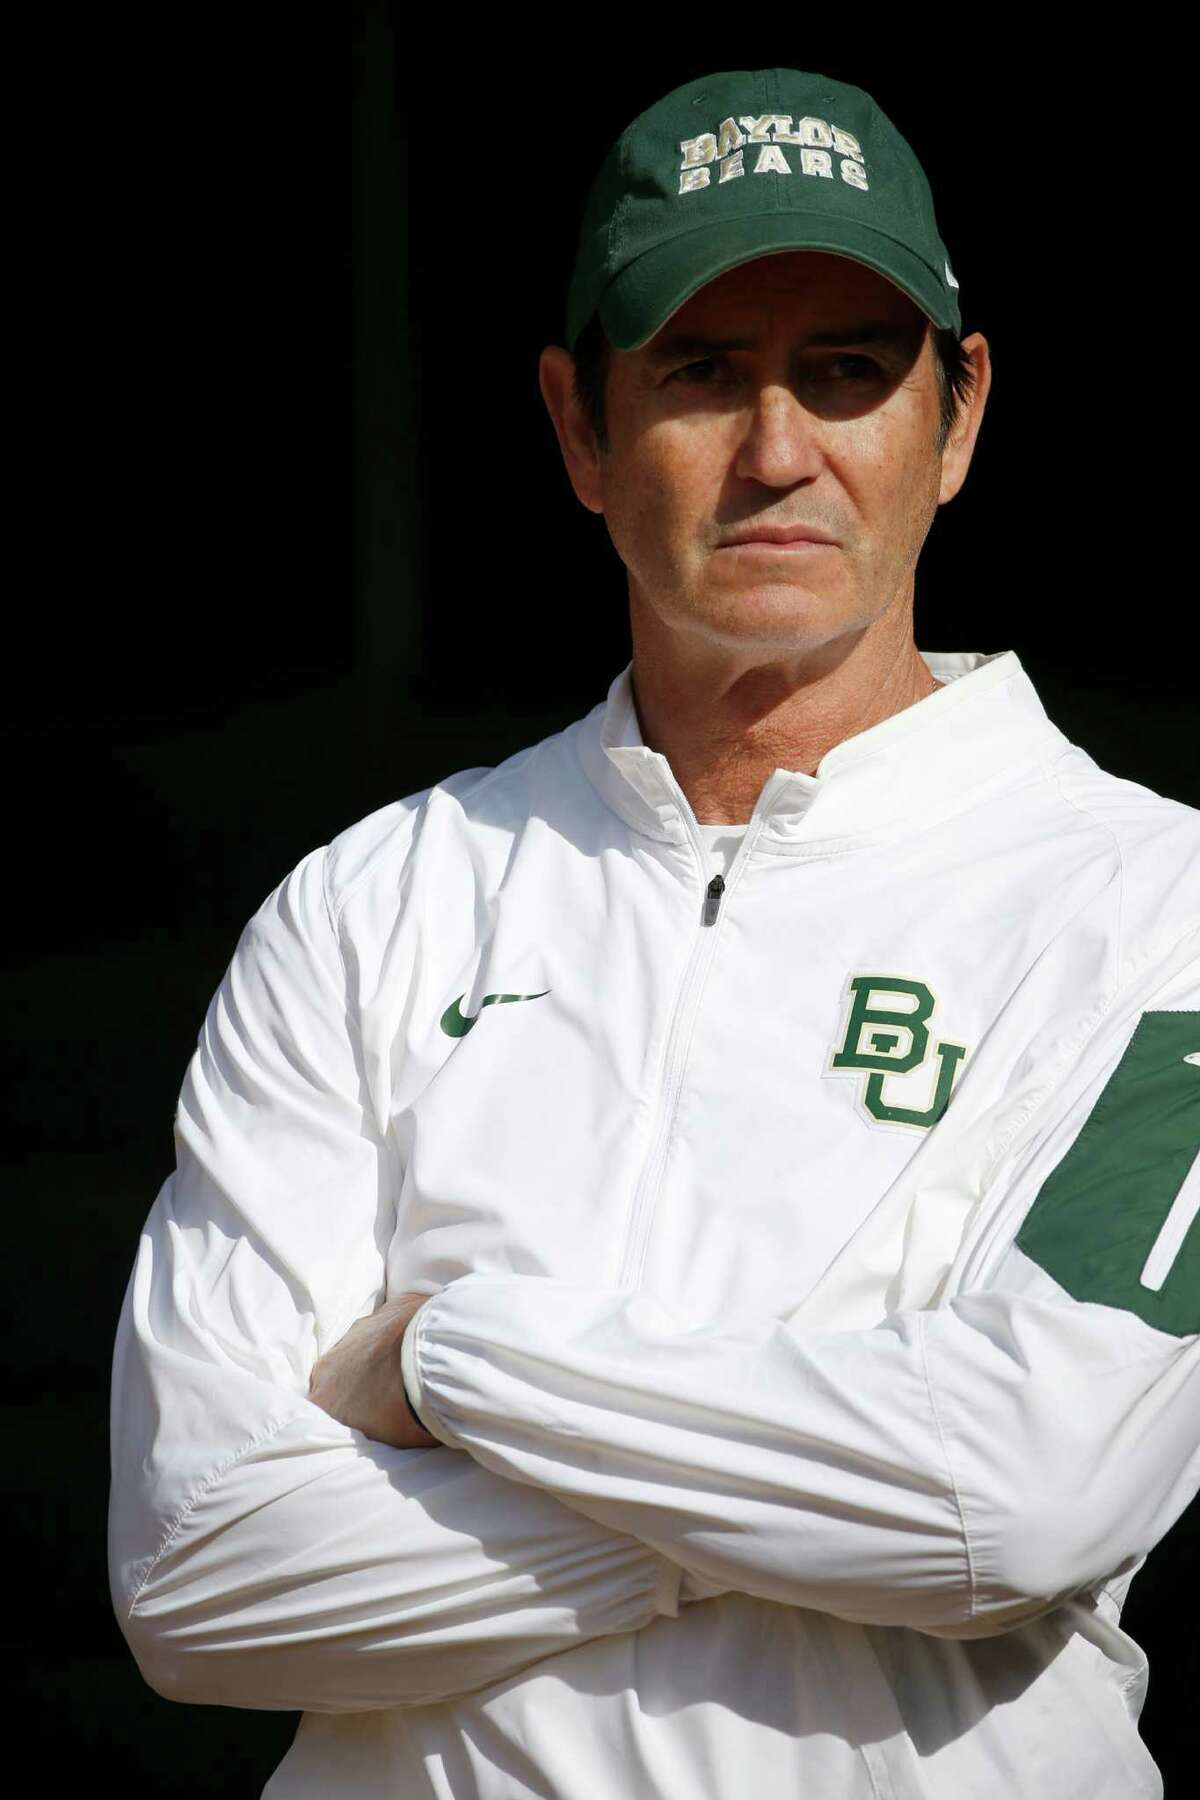 Then-head coach Art Briles of the Baylor Bears waits in the tunnel before the Bears take on the Texas Longhorns at McLane Stadium on Dec. 5, 2015 in Waco.